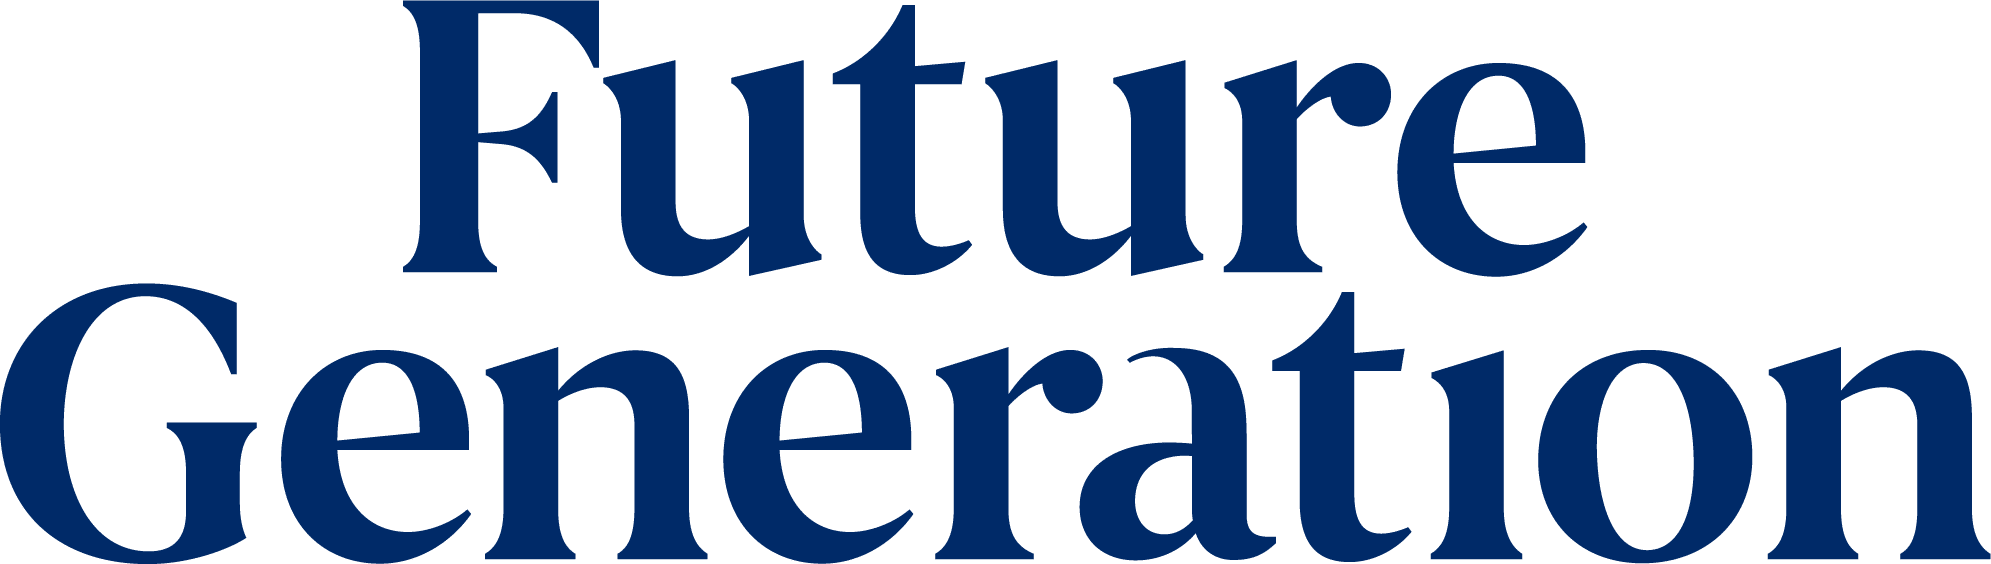 Future Generation Investment Company logo